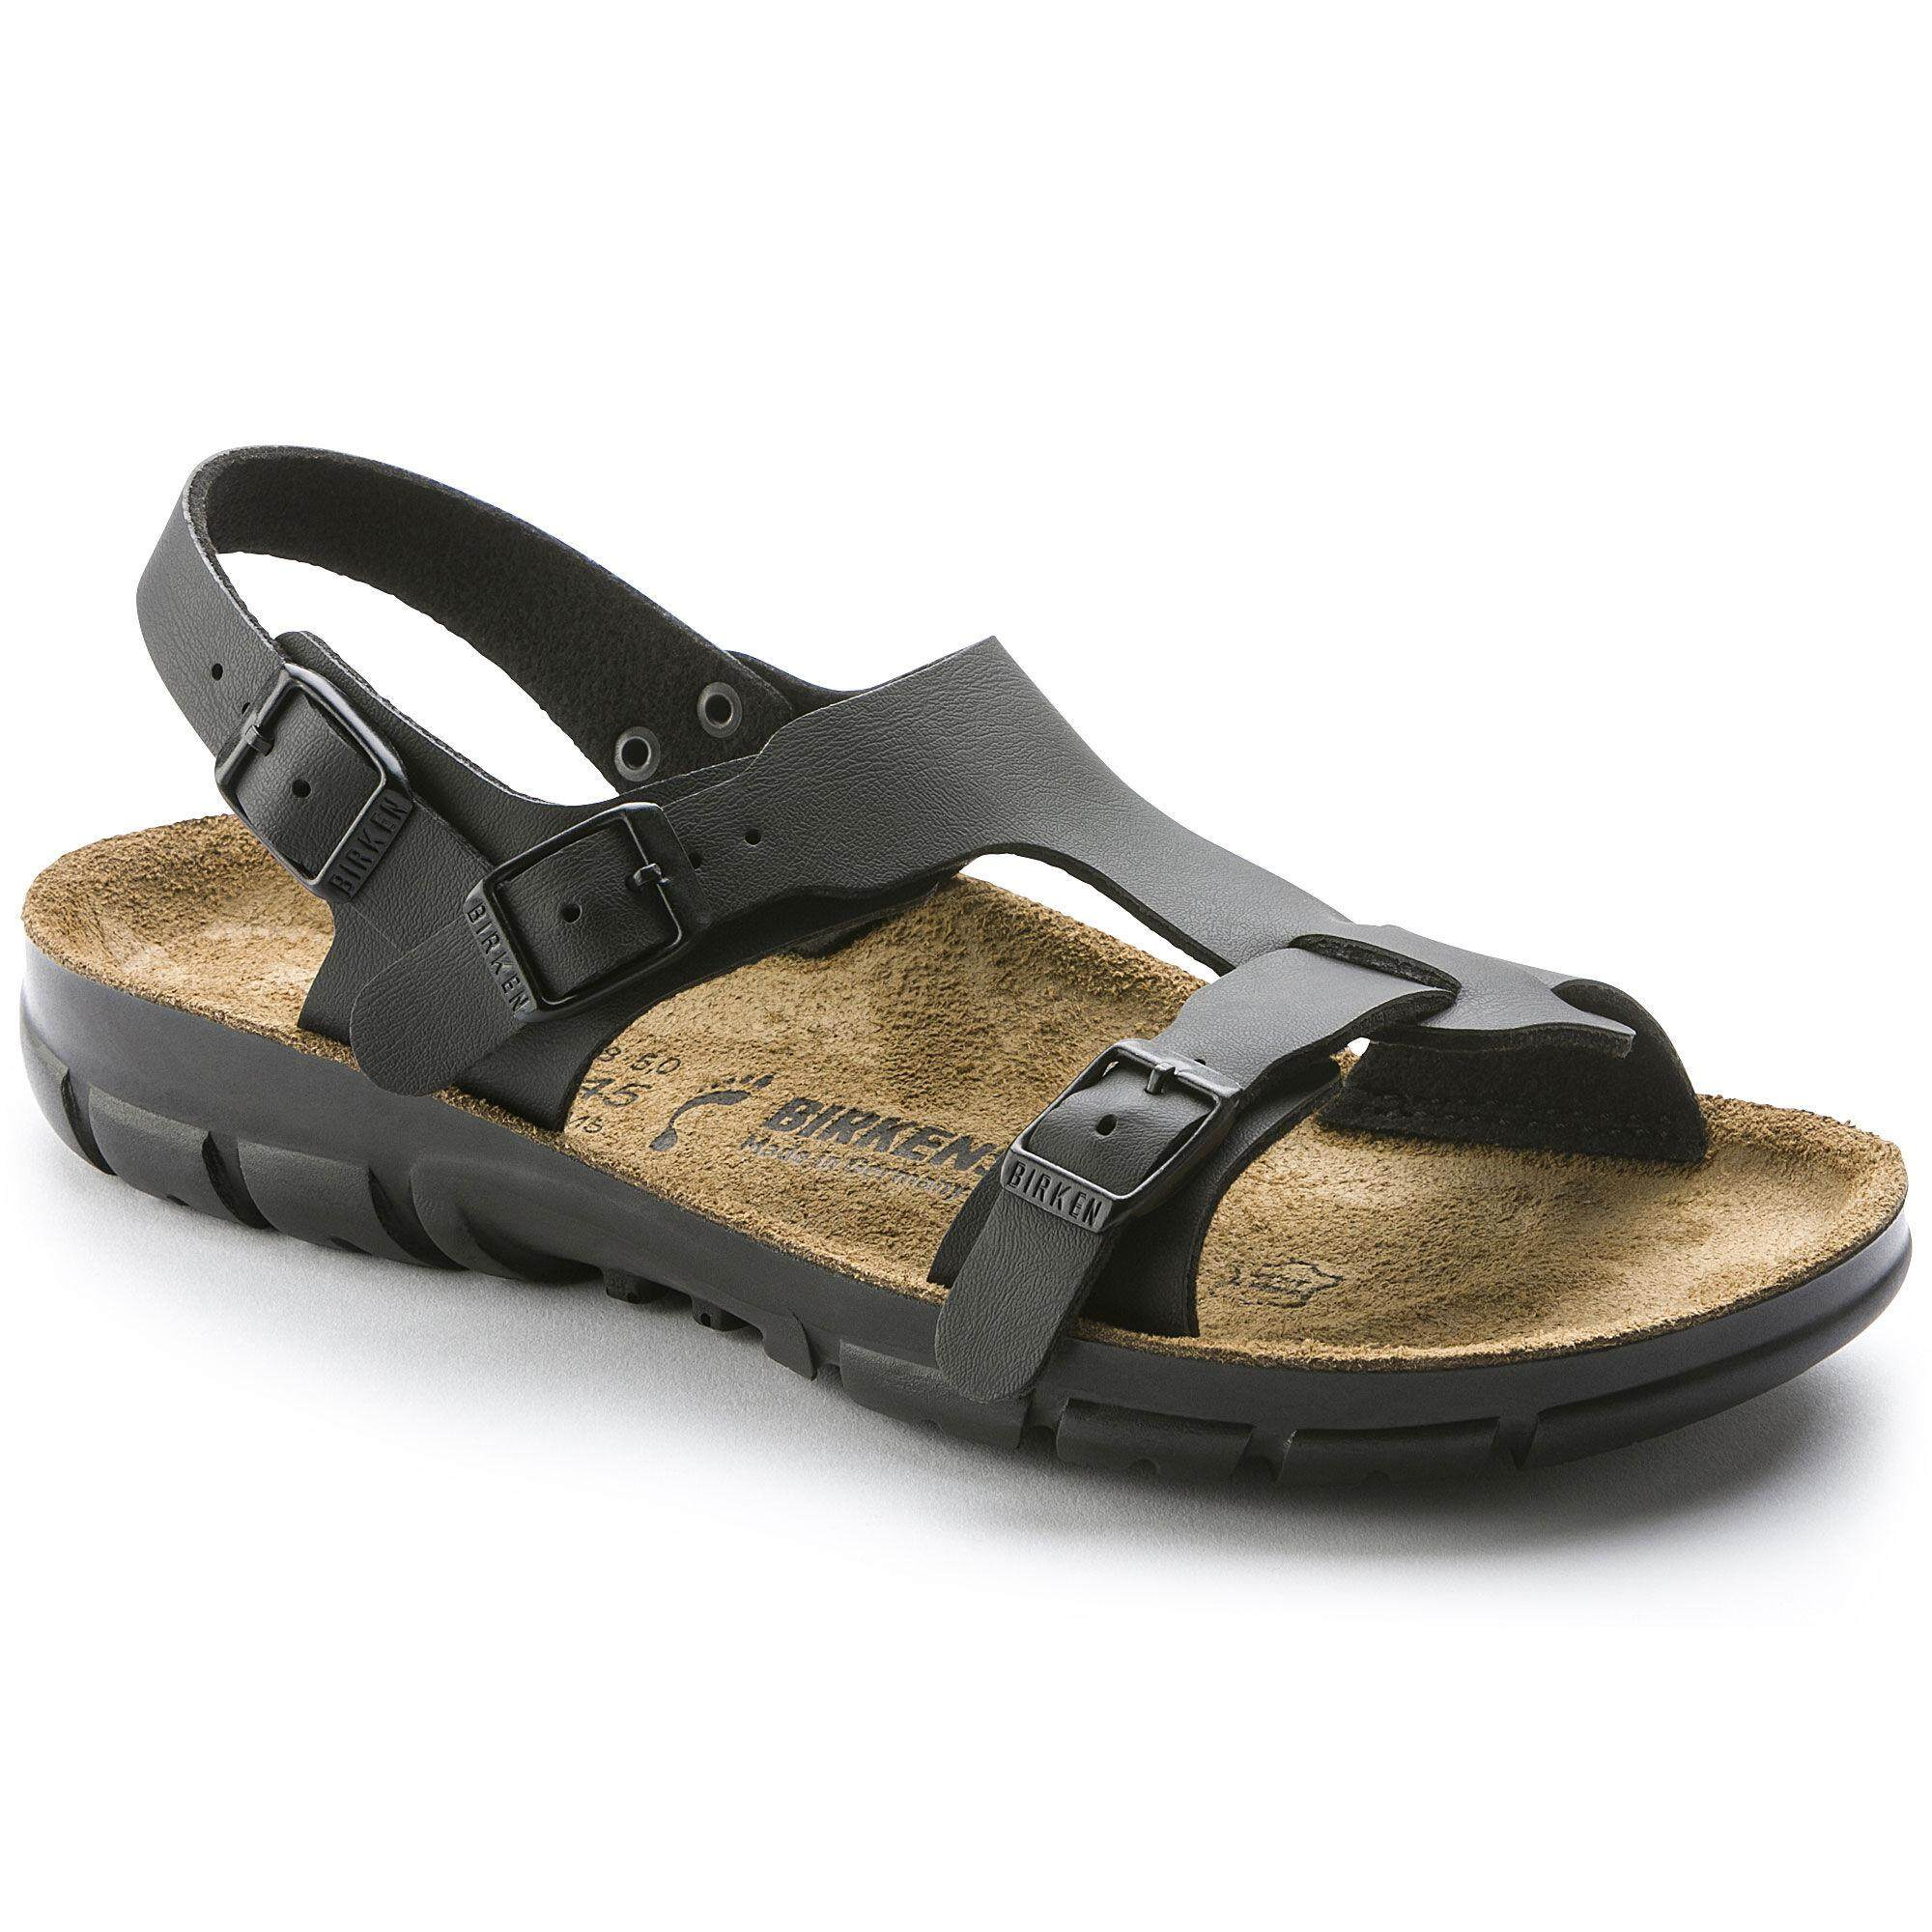 239d21df8f10 2019 Birkenstocks Women Products Saragossa Birko-Flor Black Hot